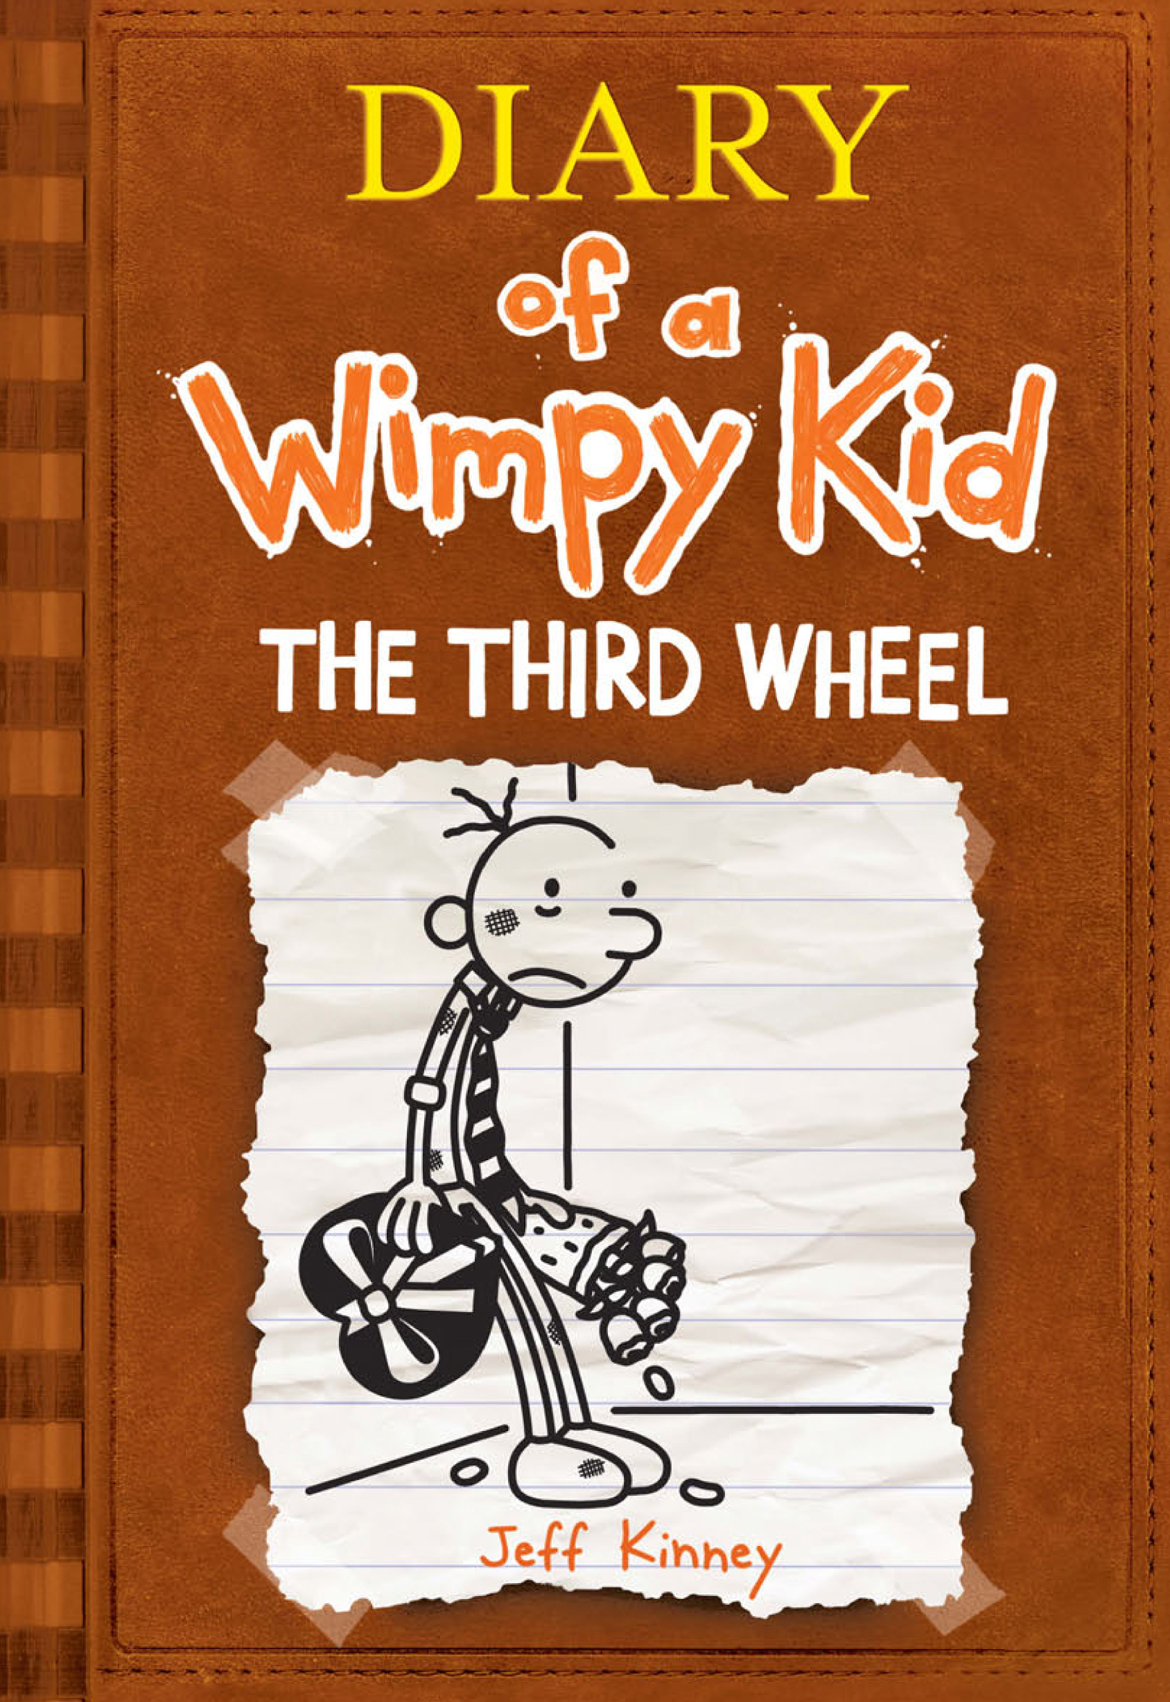 Cover Image of The Third Wheel (Diary of a Wimpy Kid #7)